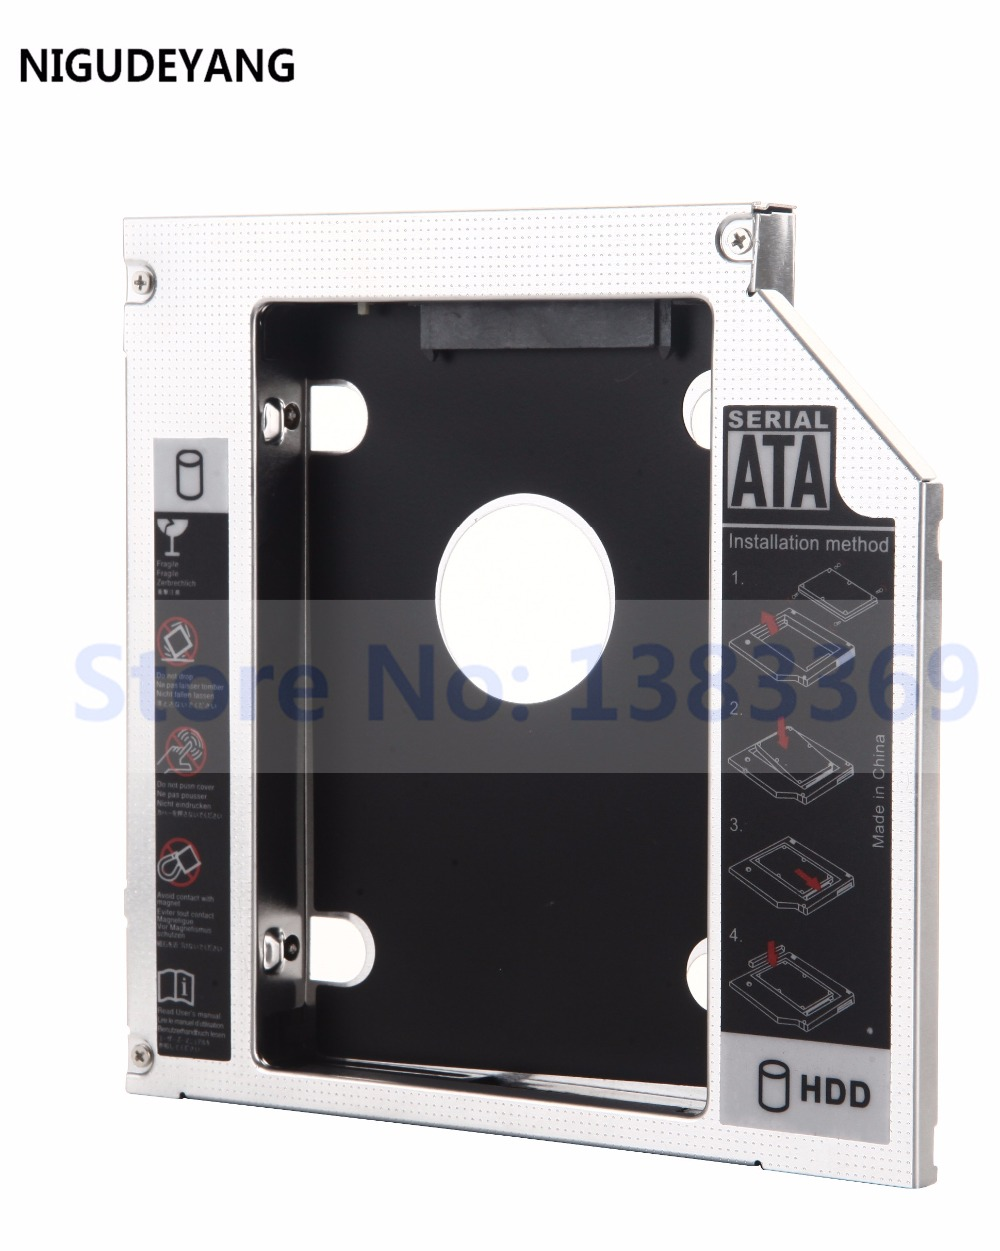 best top fujitsu hdd adapt brands and get free shipping